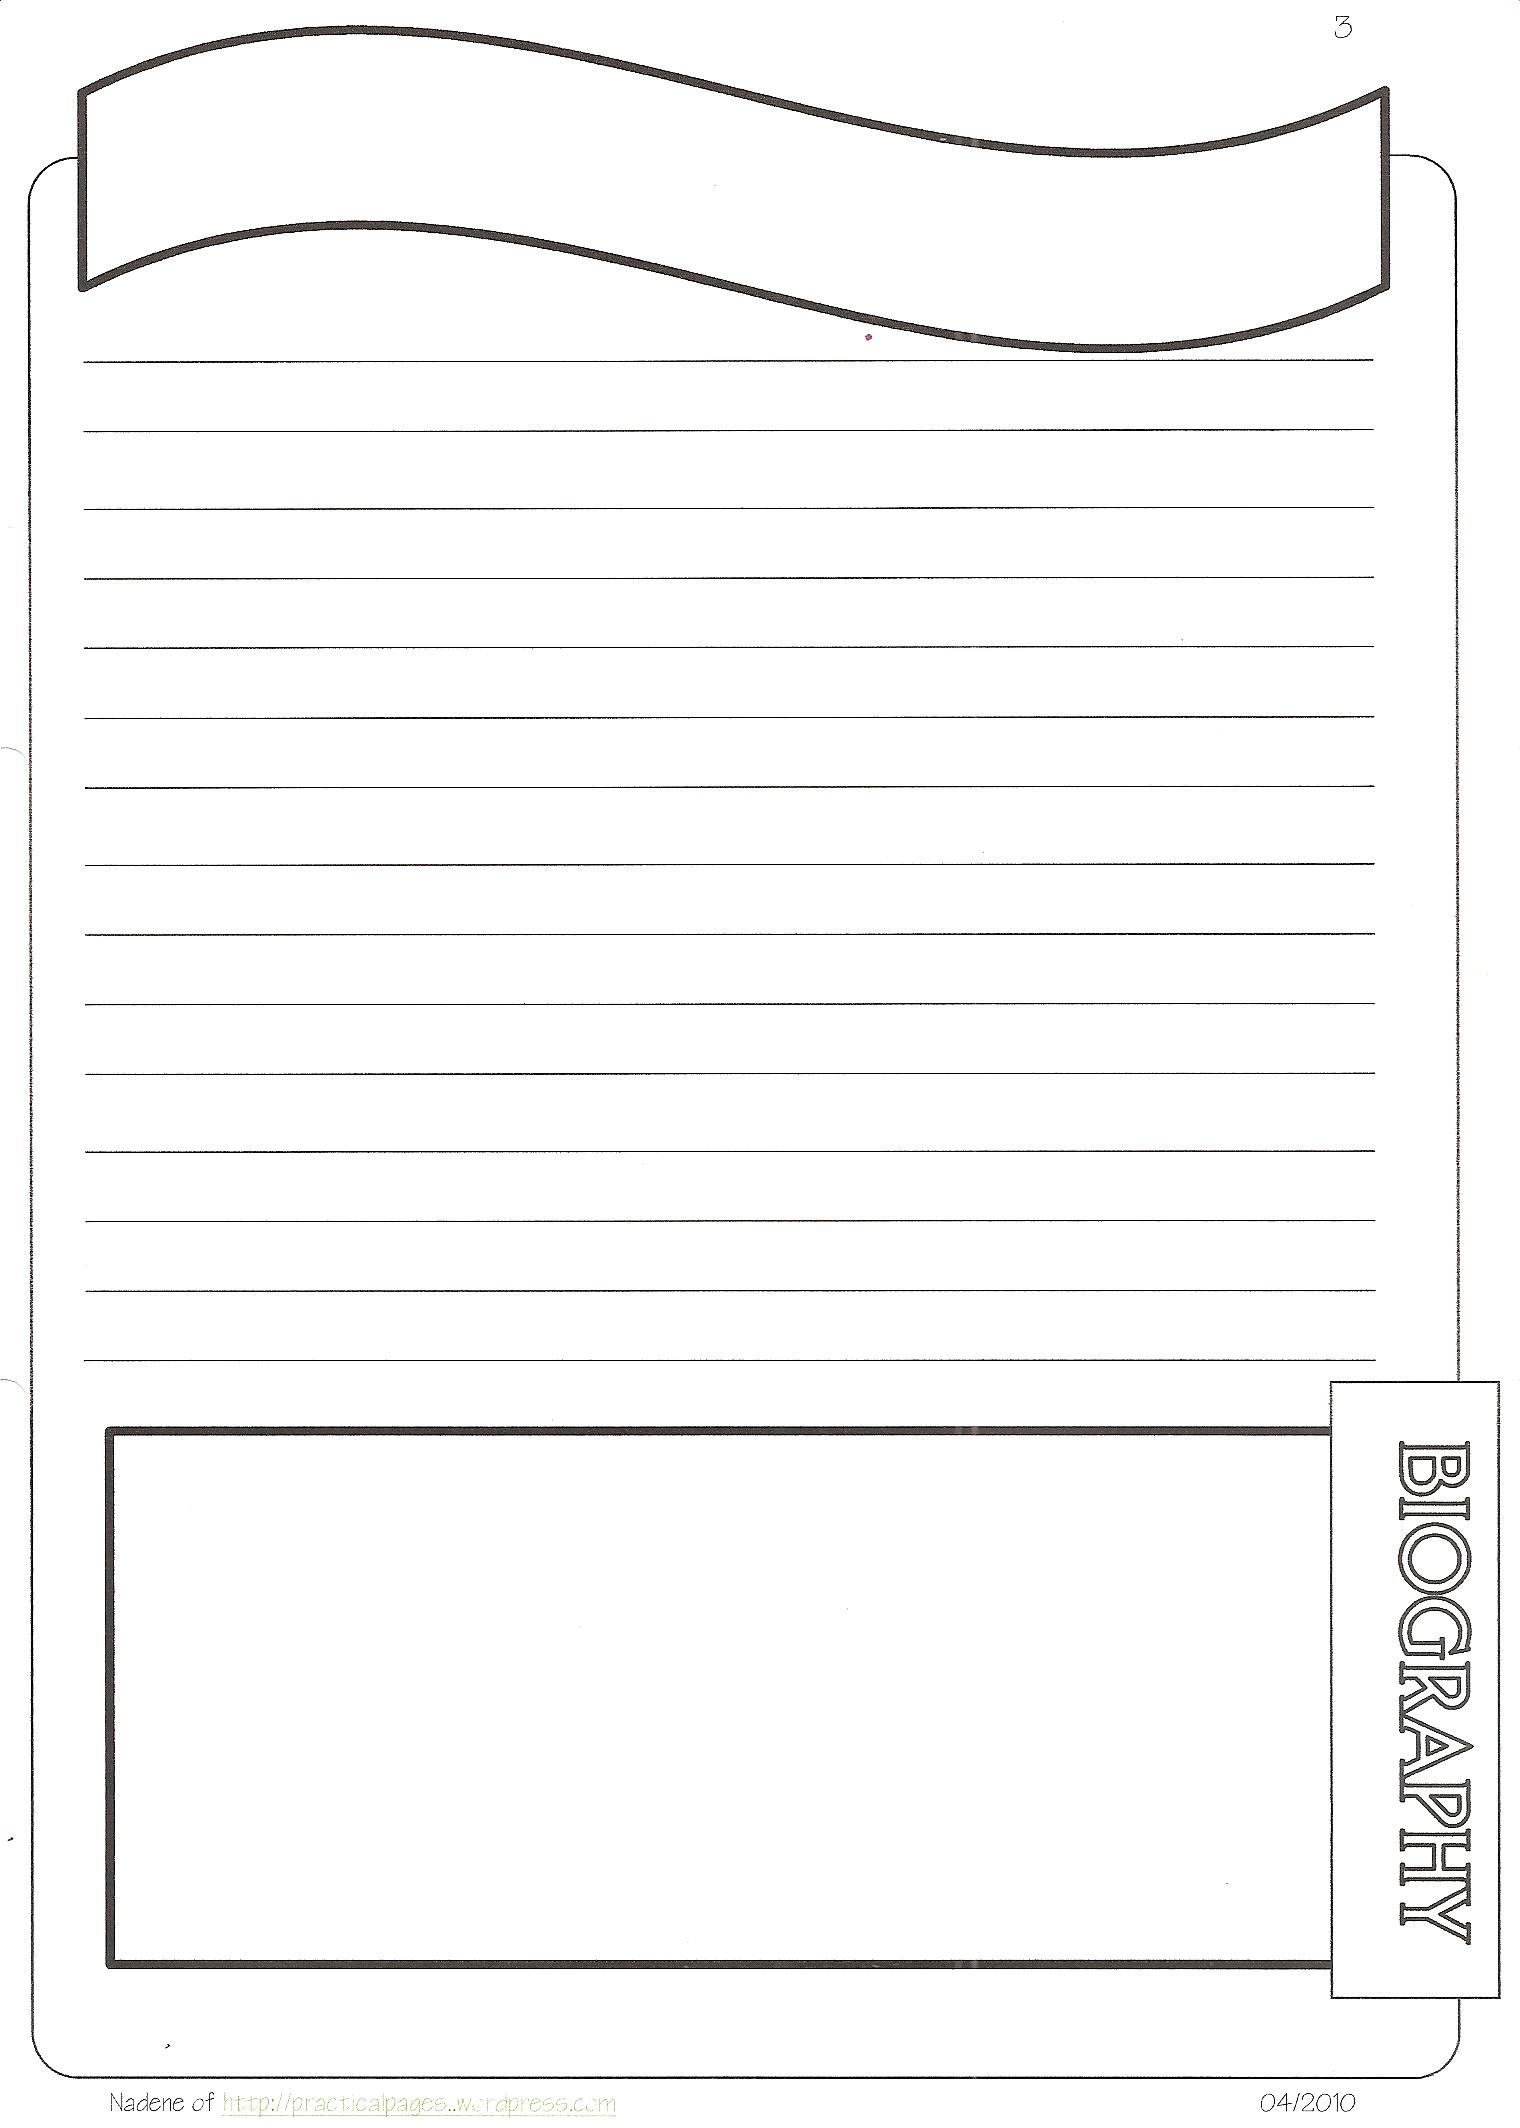 New Biography Notebook Page Templates BuZZz4zc